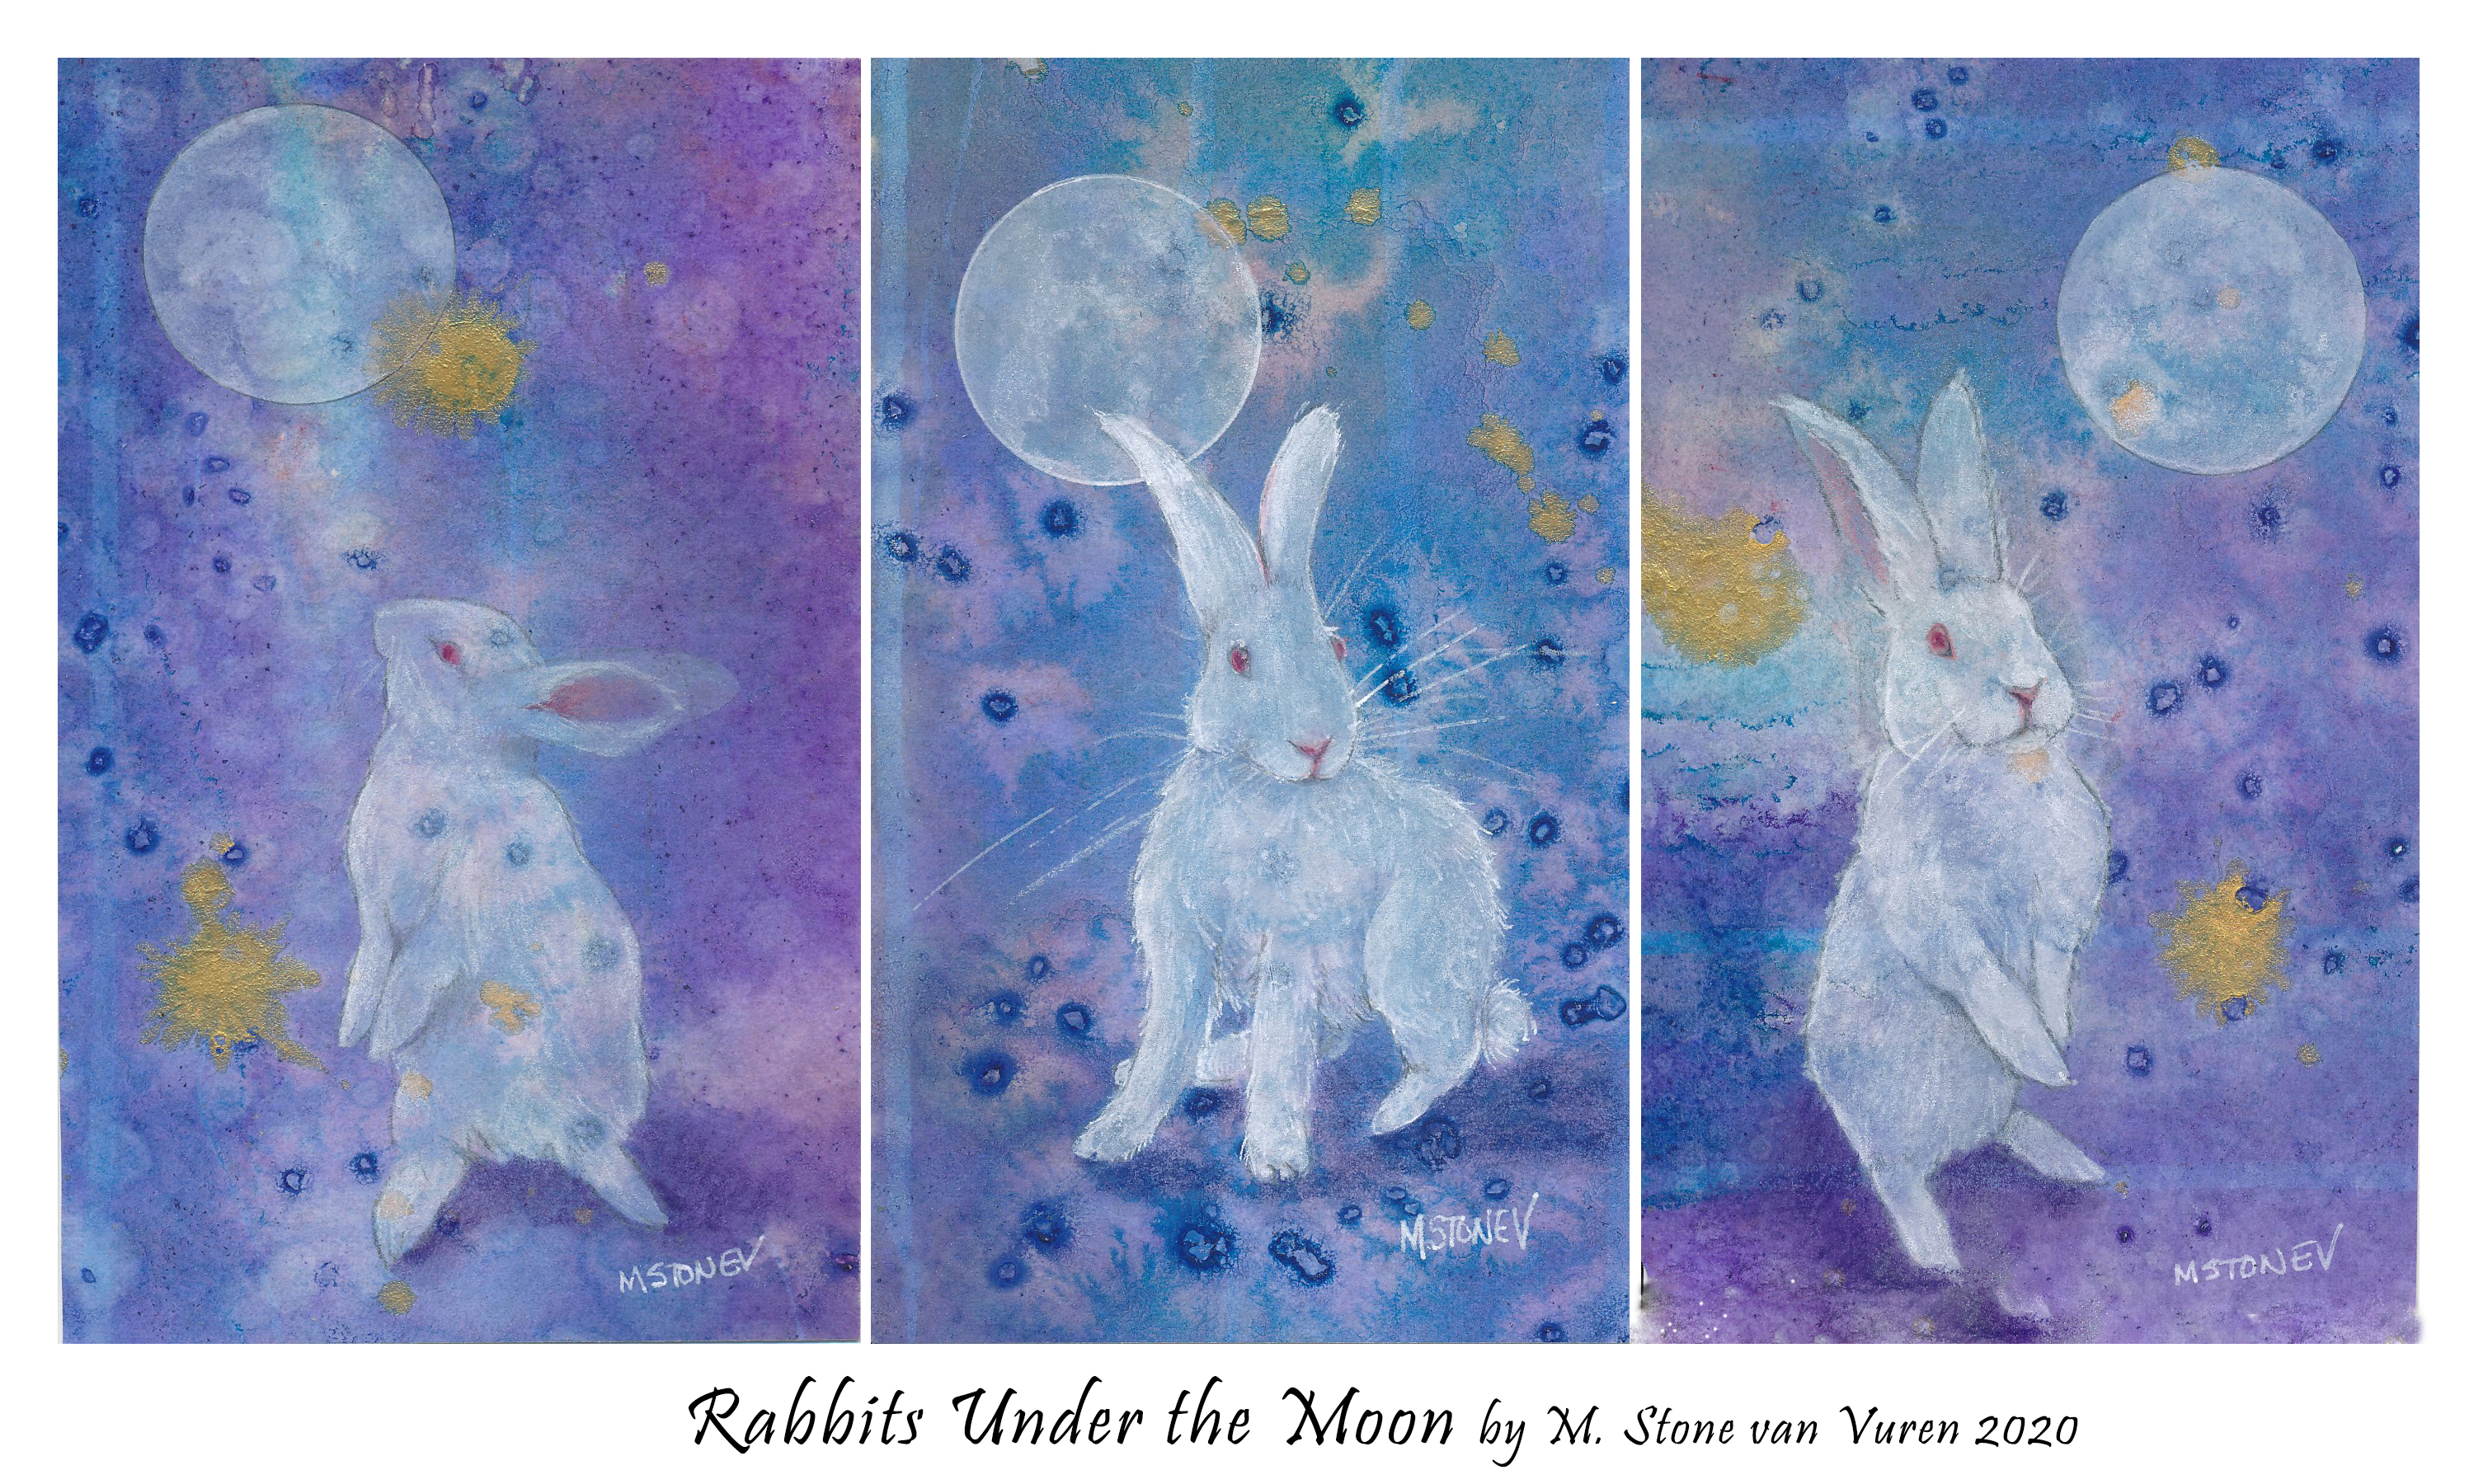 Rabbits Under the Moon